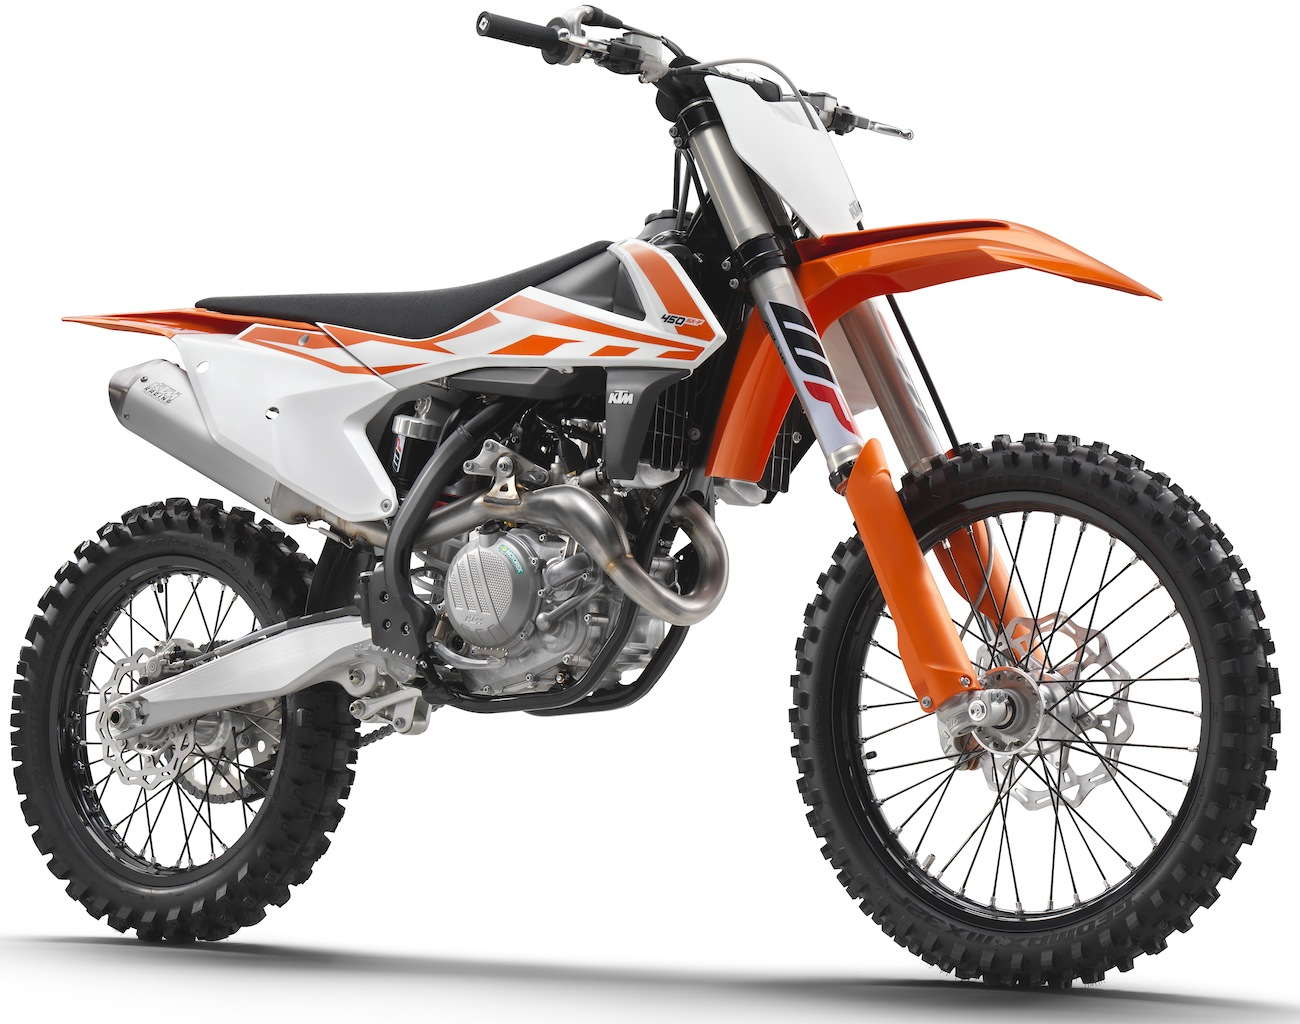 Ktm 350 Engine Diagram Enthusiast Wiring Diagrams Xcf First Look Up Close With The 2017 S Motocross Action Magazine Rh Motocrossactionmag Com Gmc Chevy